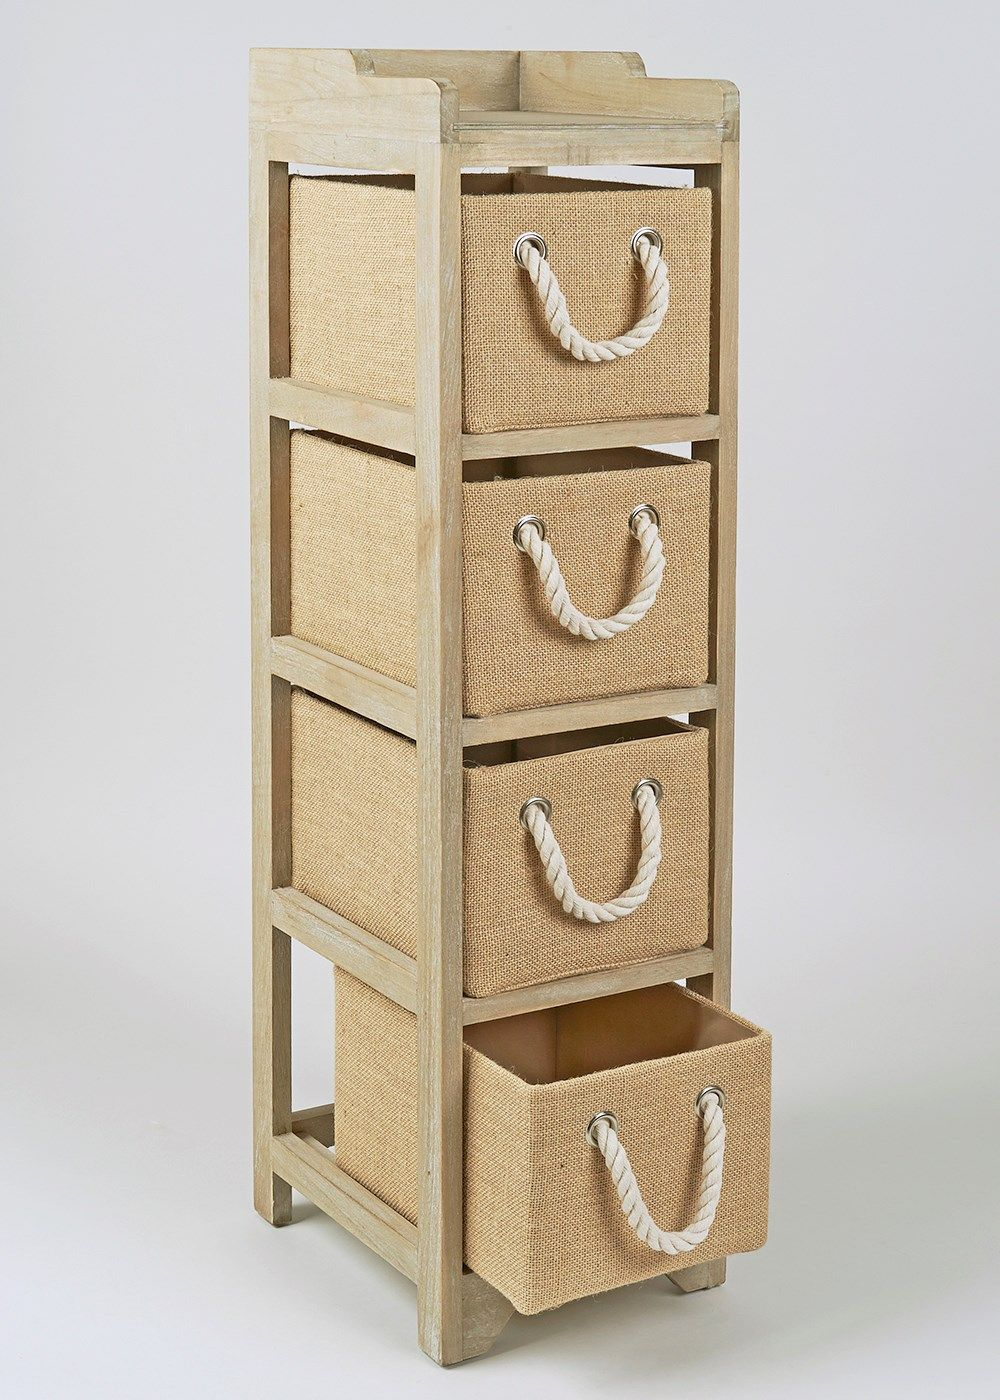 Gallery One Tall drawers